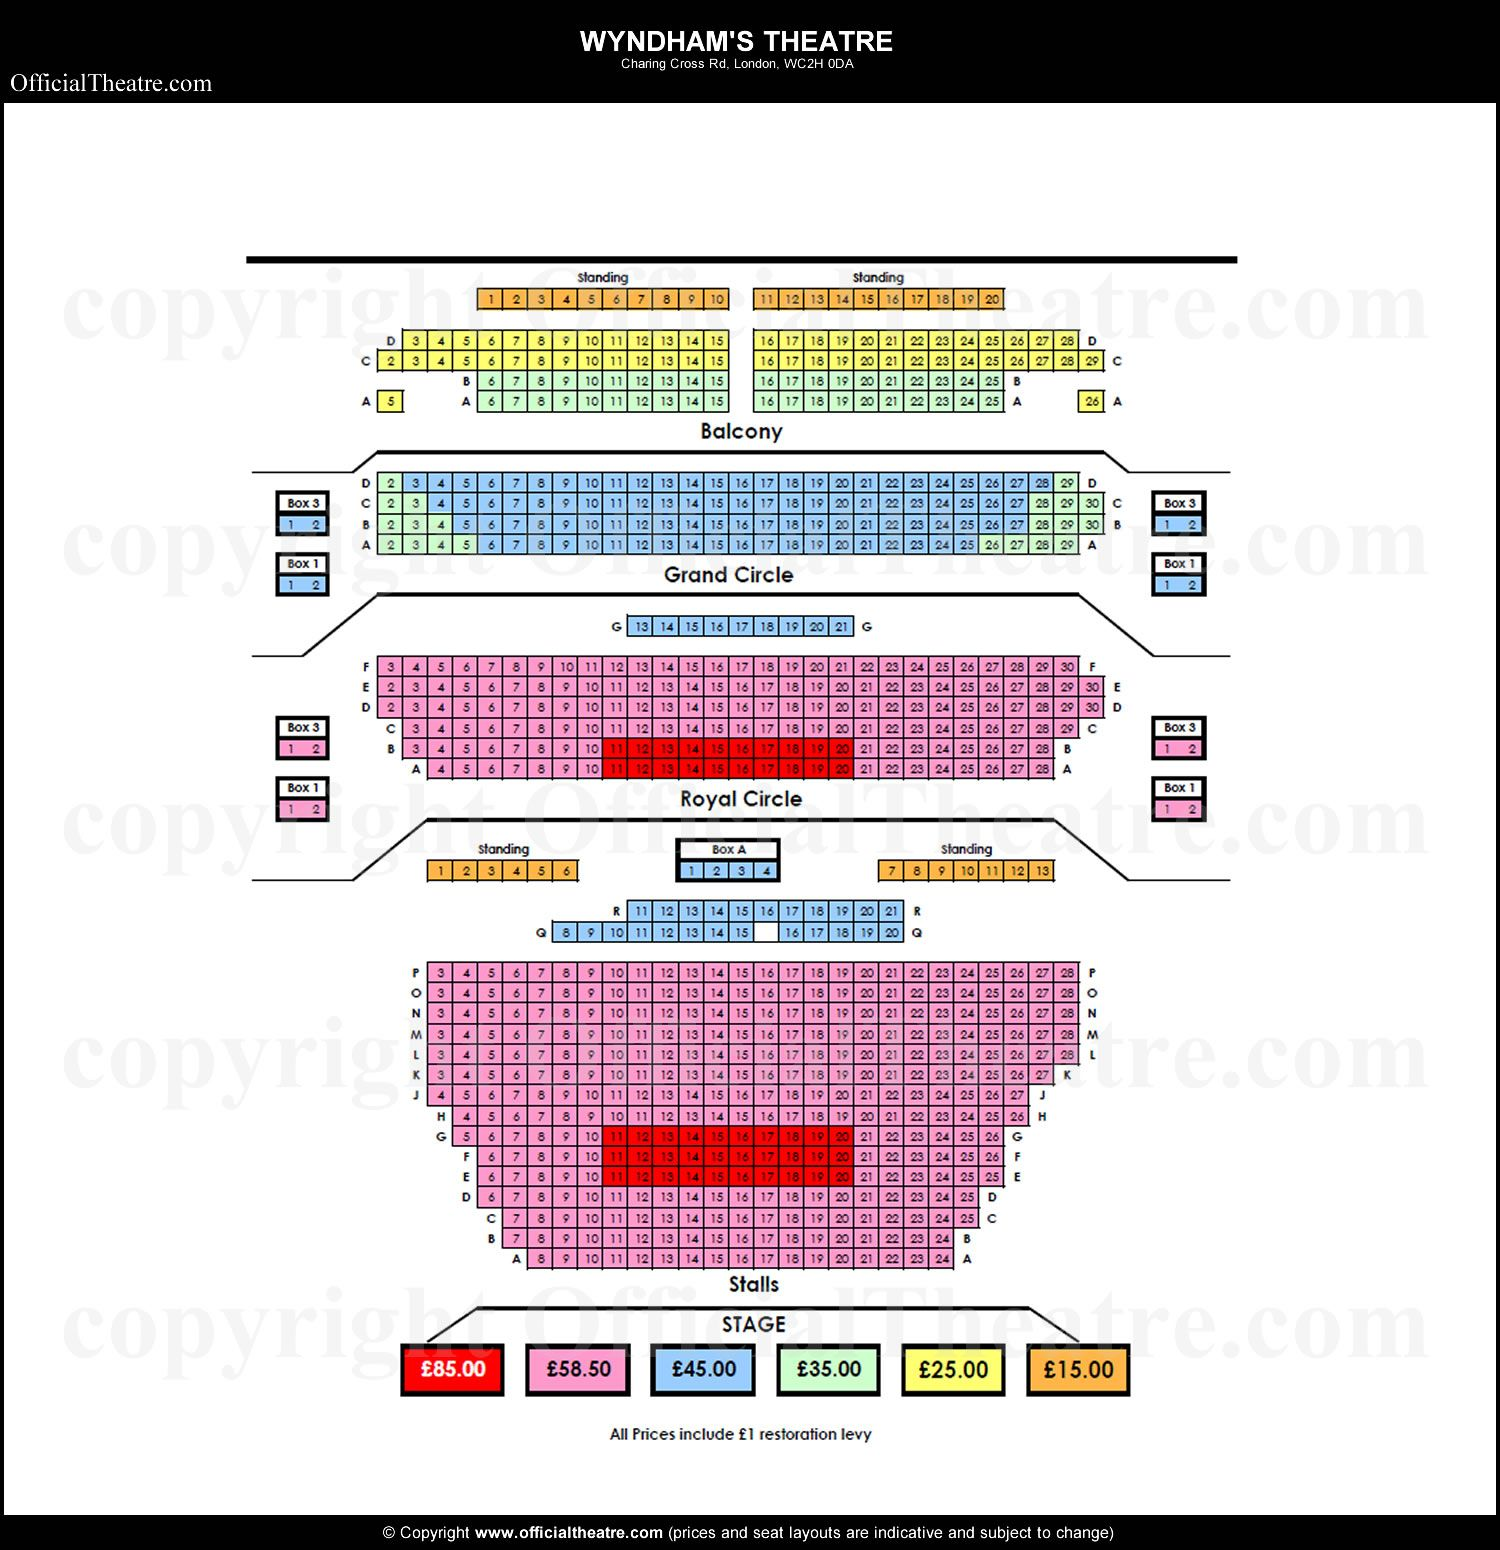 Wyndhams Theatre Seating plan and price guide